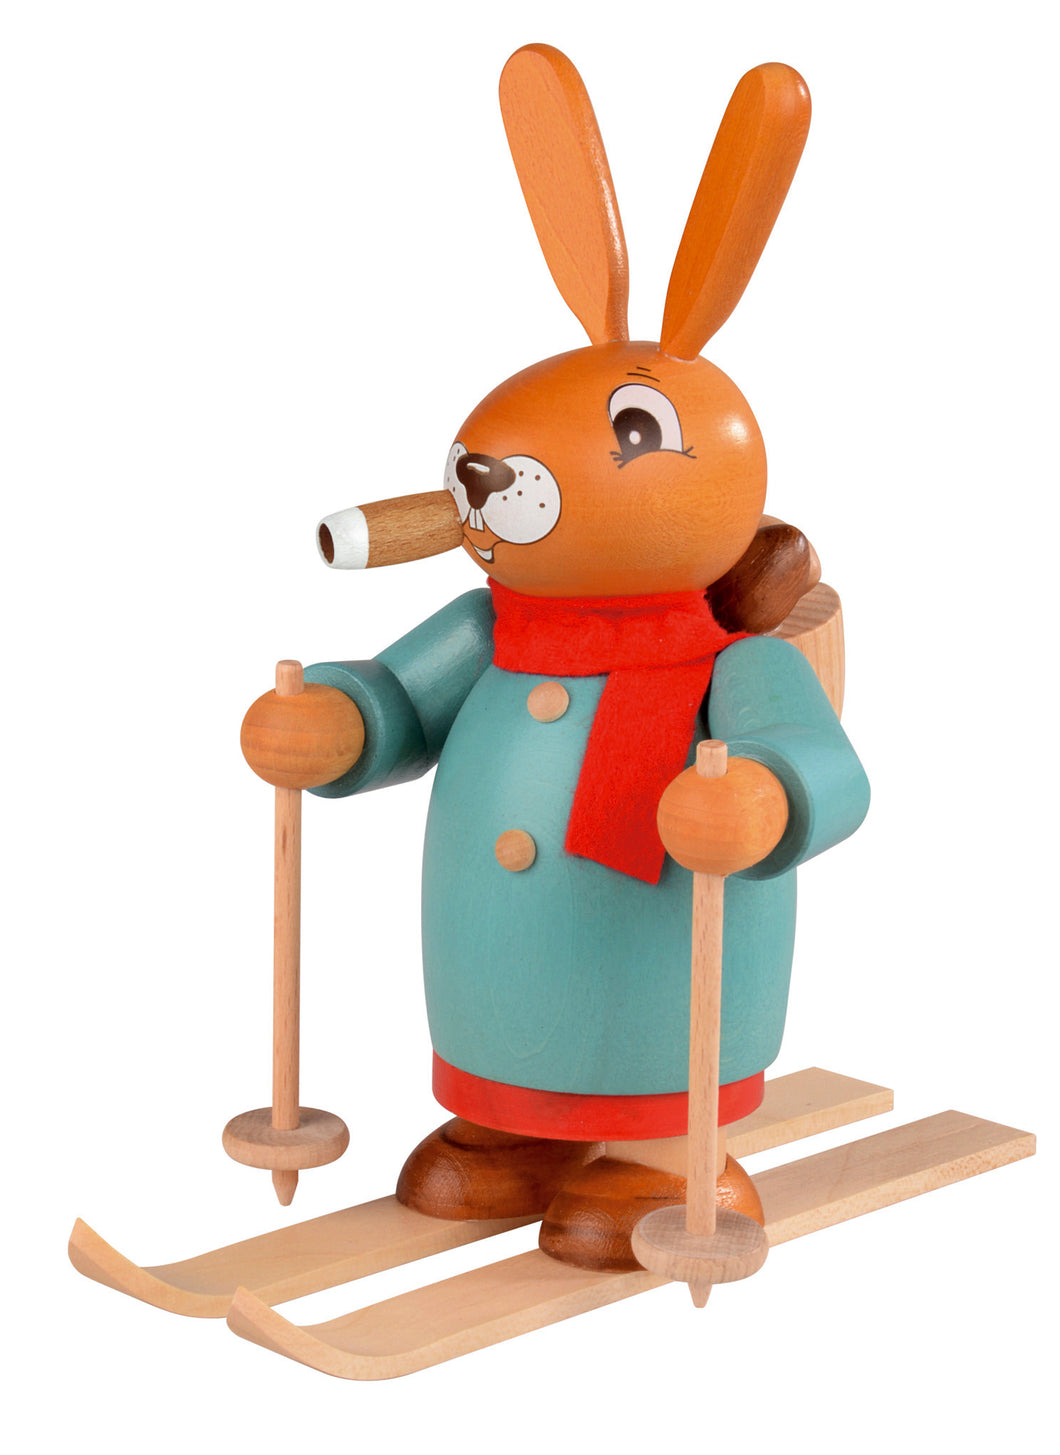 Smoking man Easter bunny on Skis